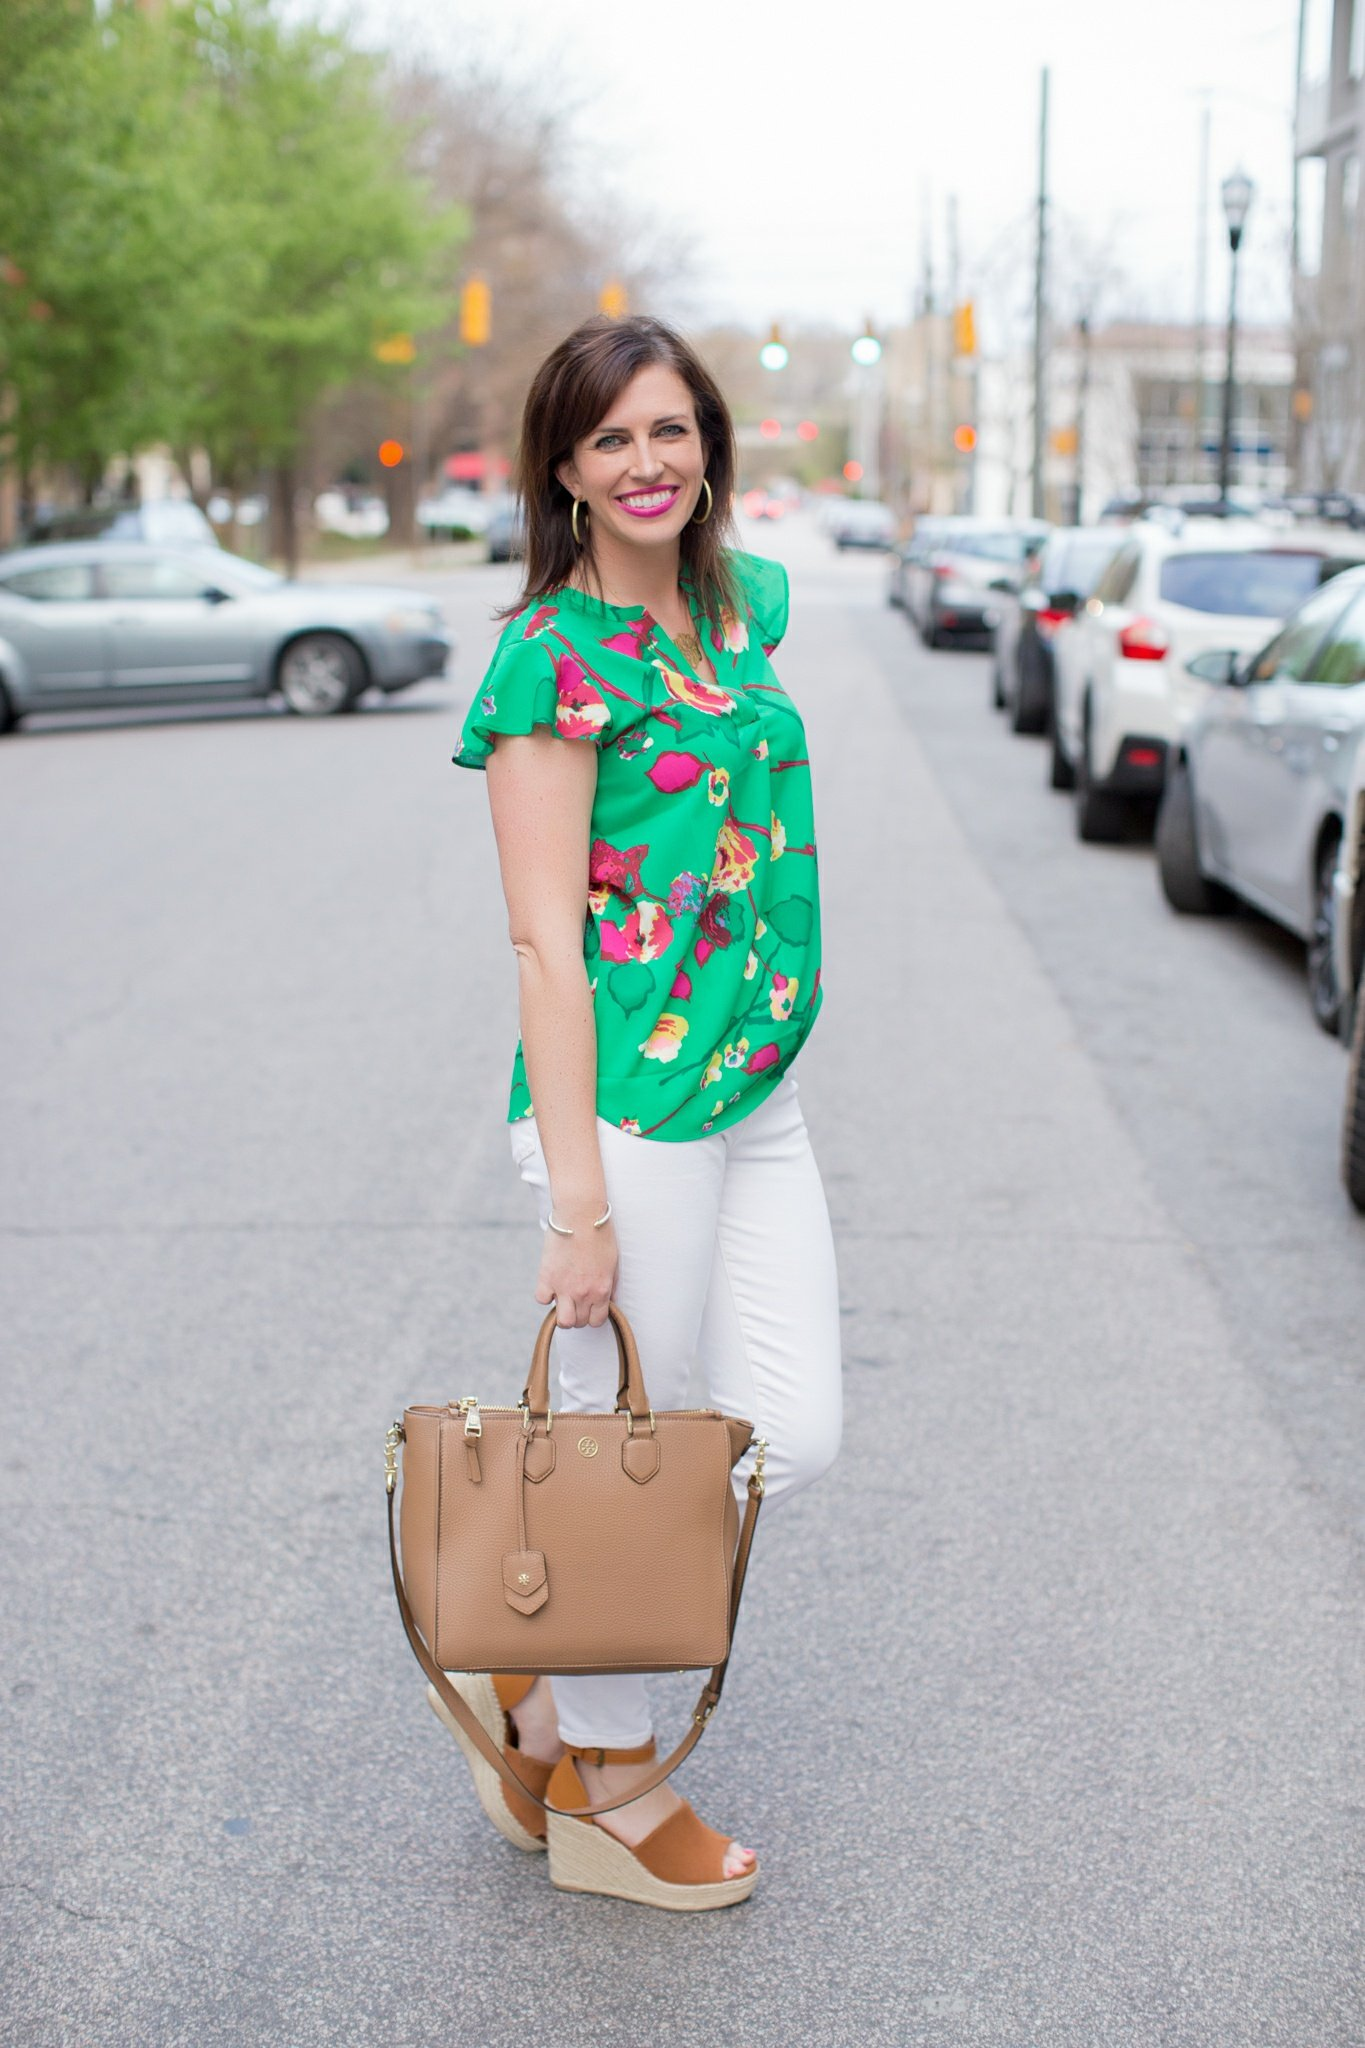 Green Floral Top + White Jeans for Spring - @mbg0112 - I'm Fixin' To